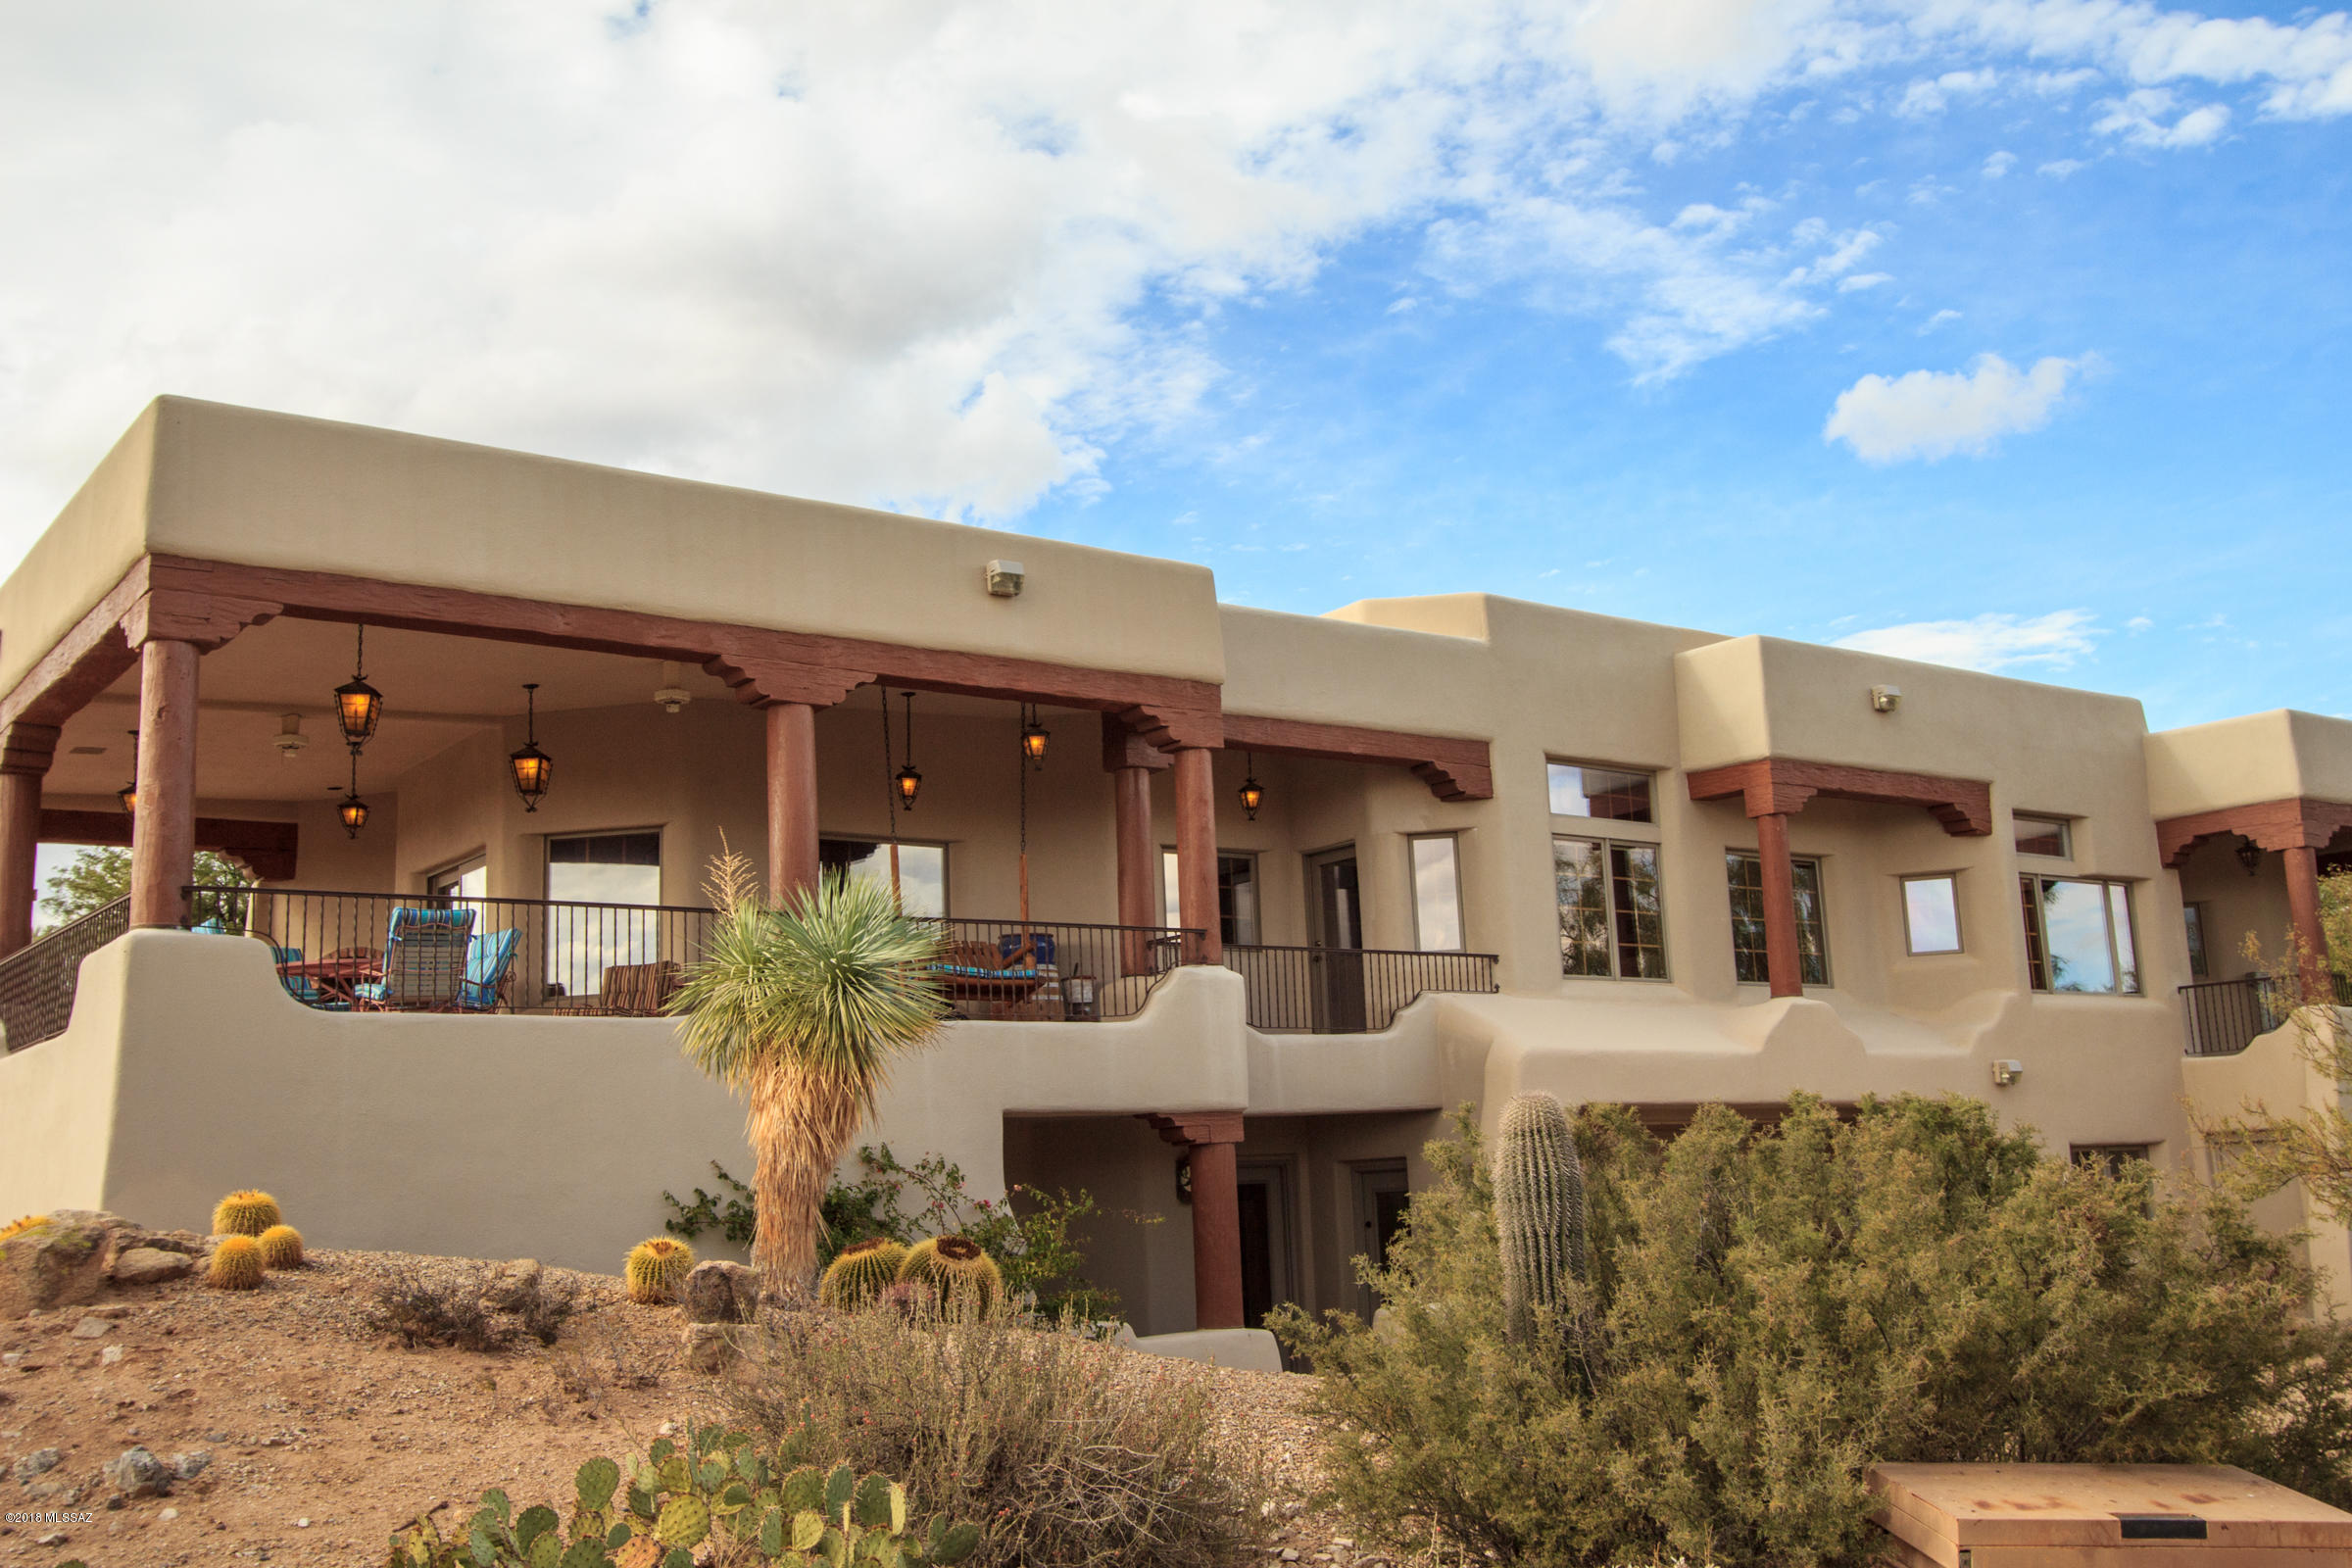 Remarkable Property Photo N Piper Peggy Right Away Disposal Tucson Prices Right Away Disposal Tucson Reviews houzz 01 Right Away Disposal Tucson